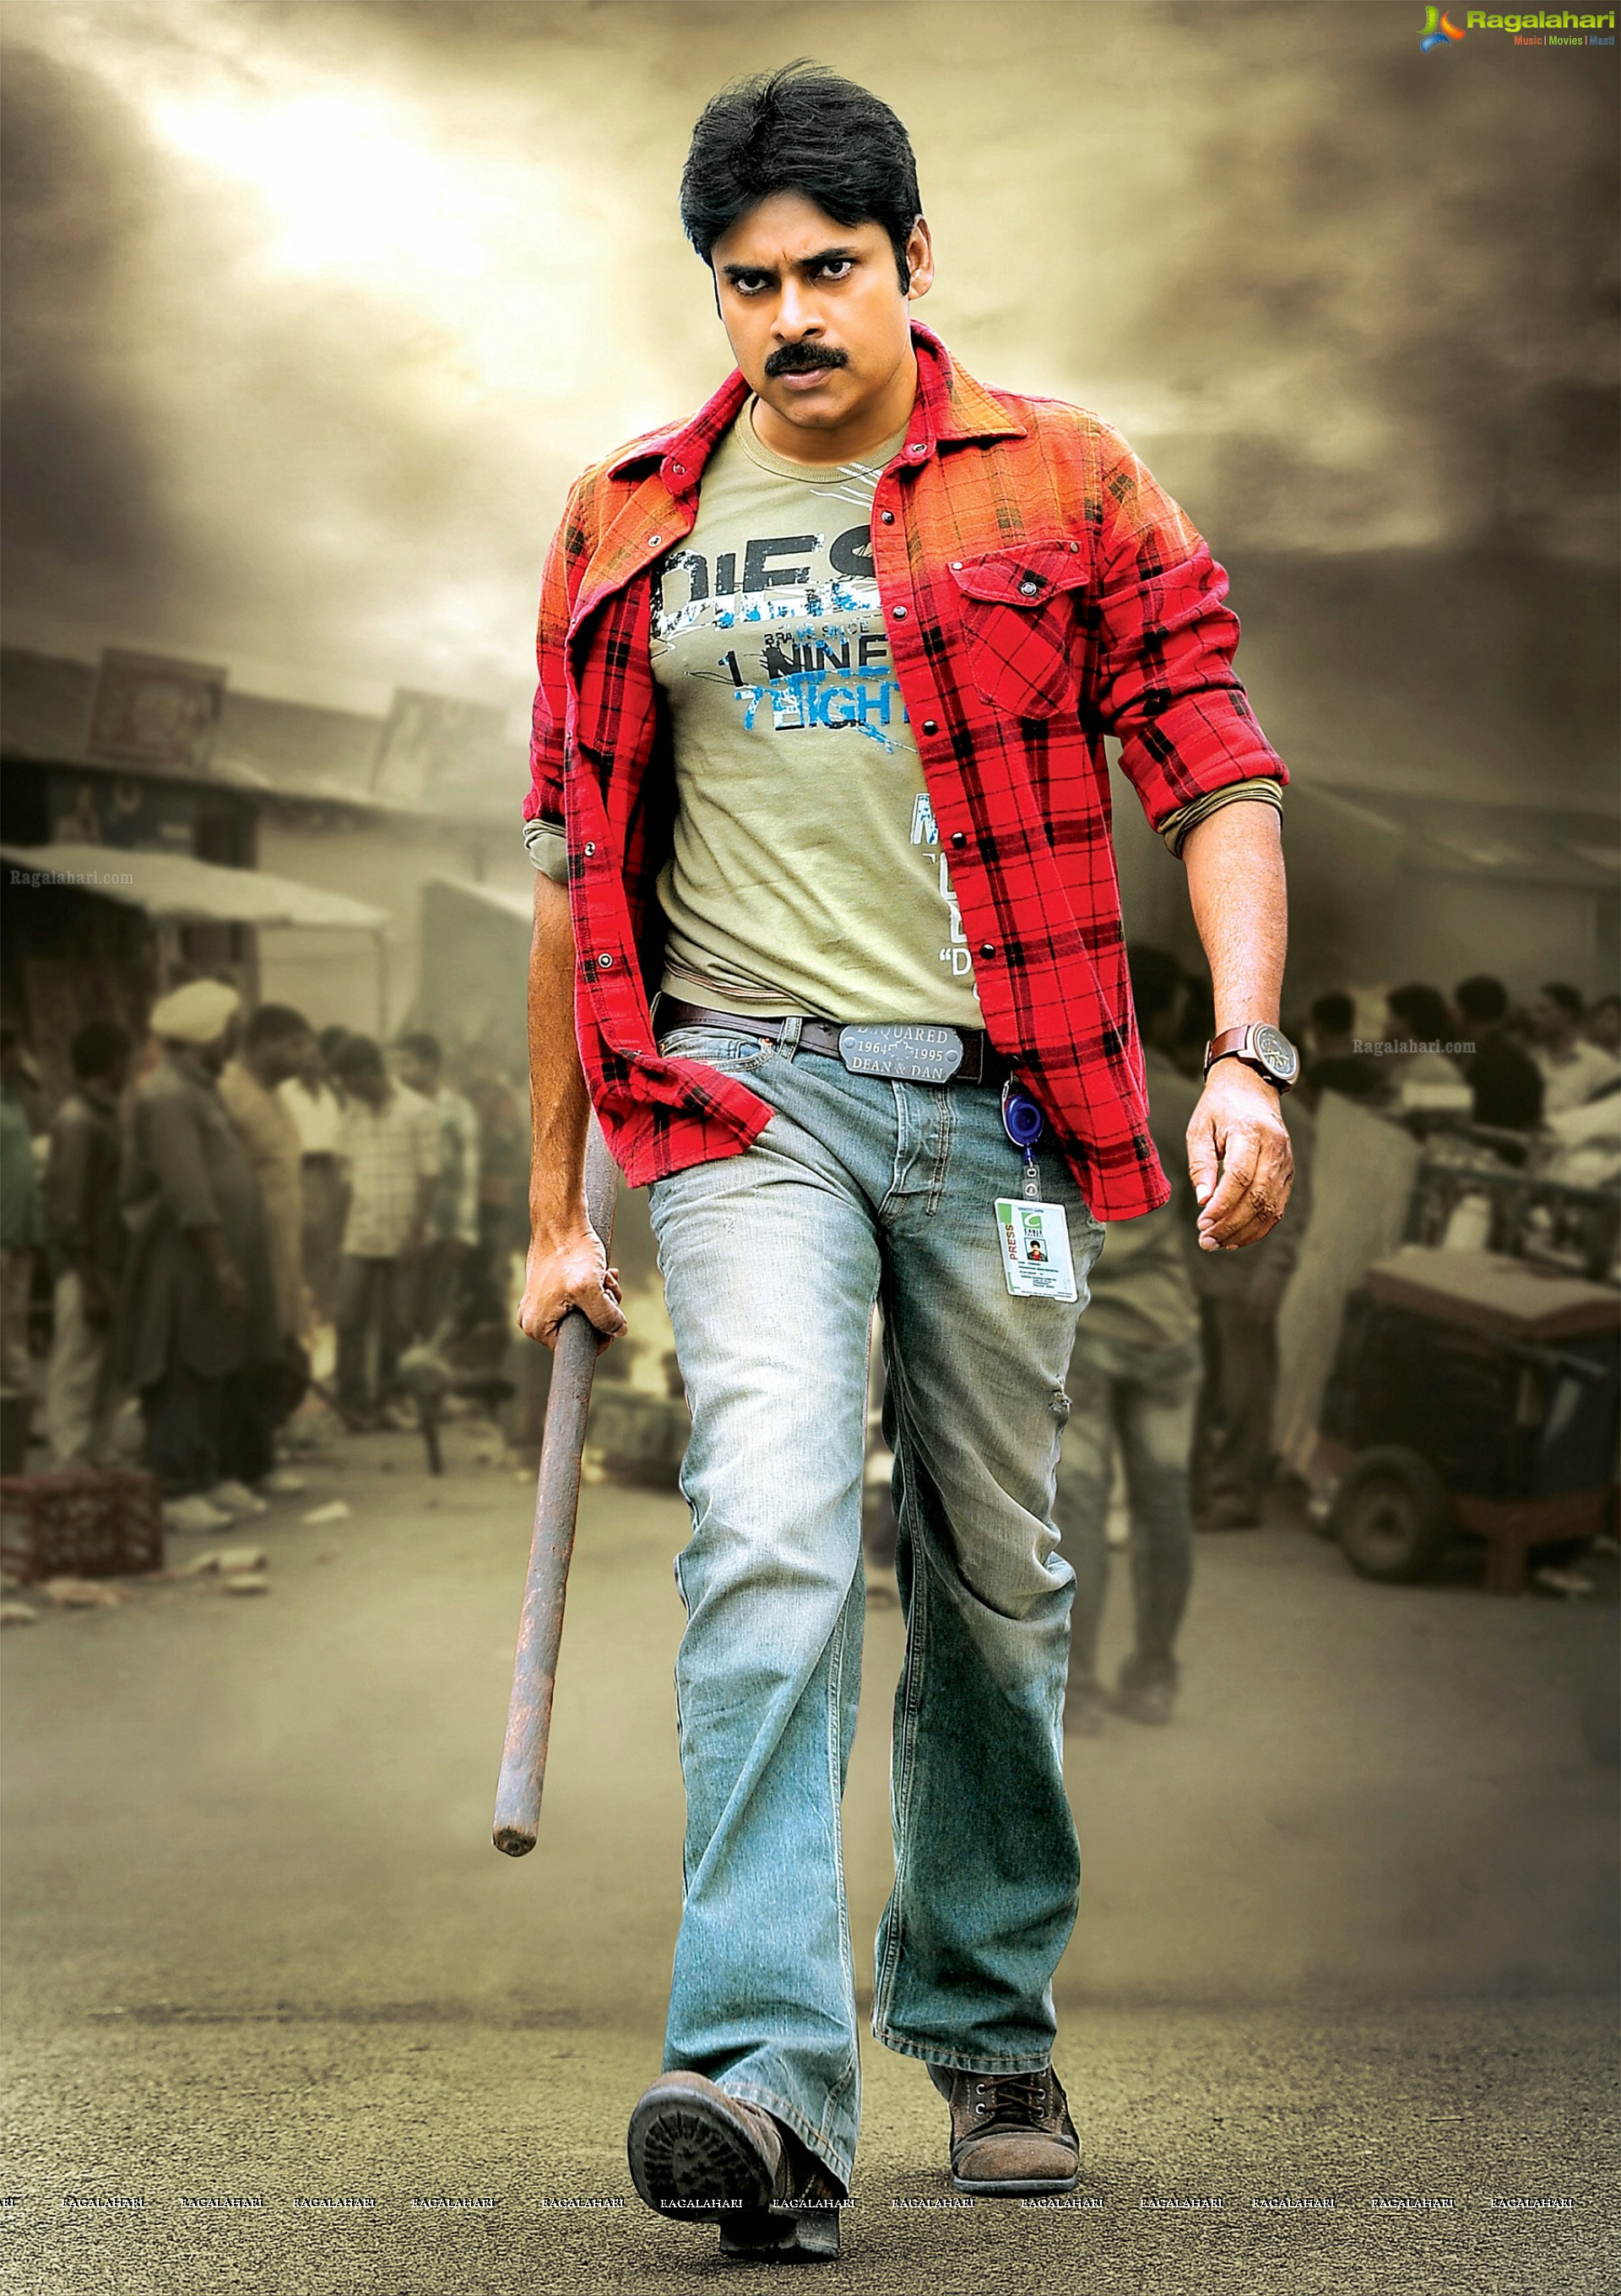 pawan kalyan (hd) image 3 | tollywood actor gallery,telugu actor